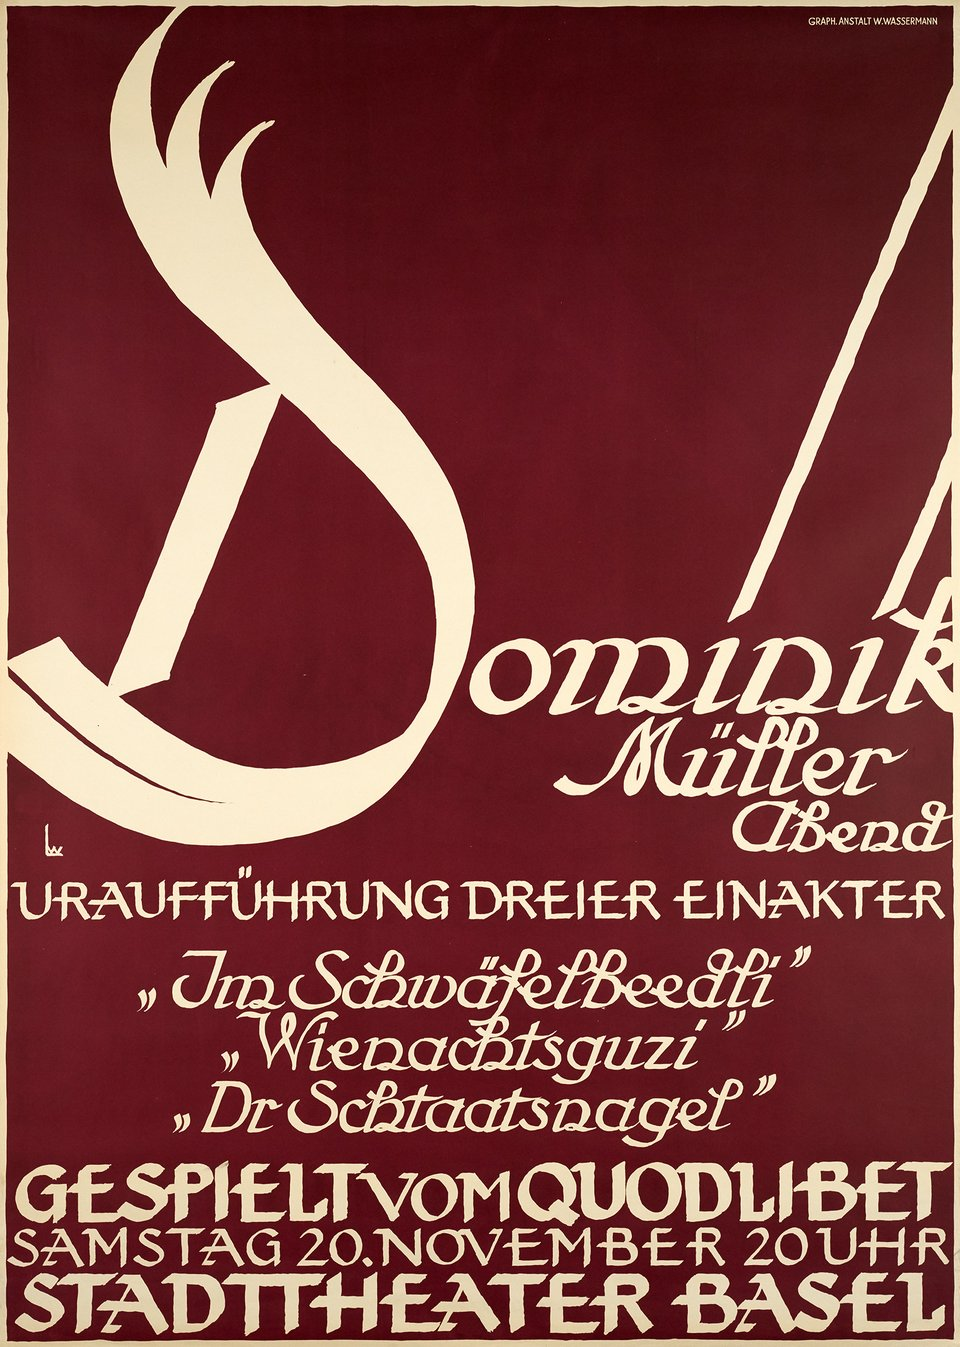 Dominik Müller Abend, Basel – Affiche ancienne – Wolfgang LUTHY – 1926